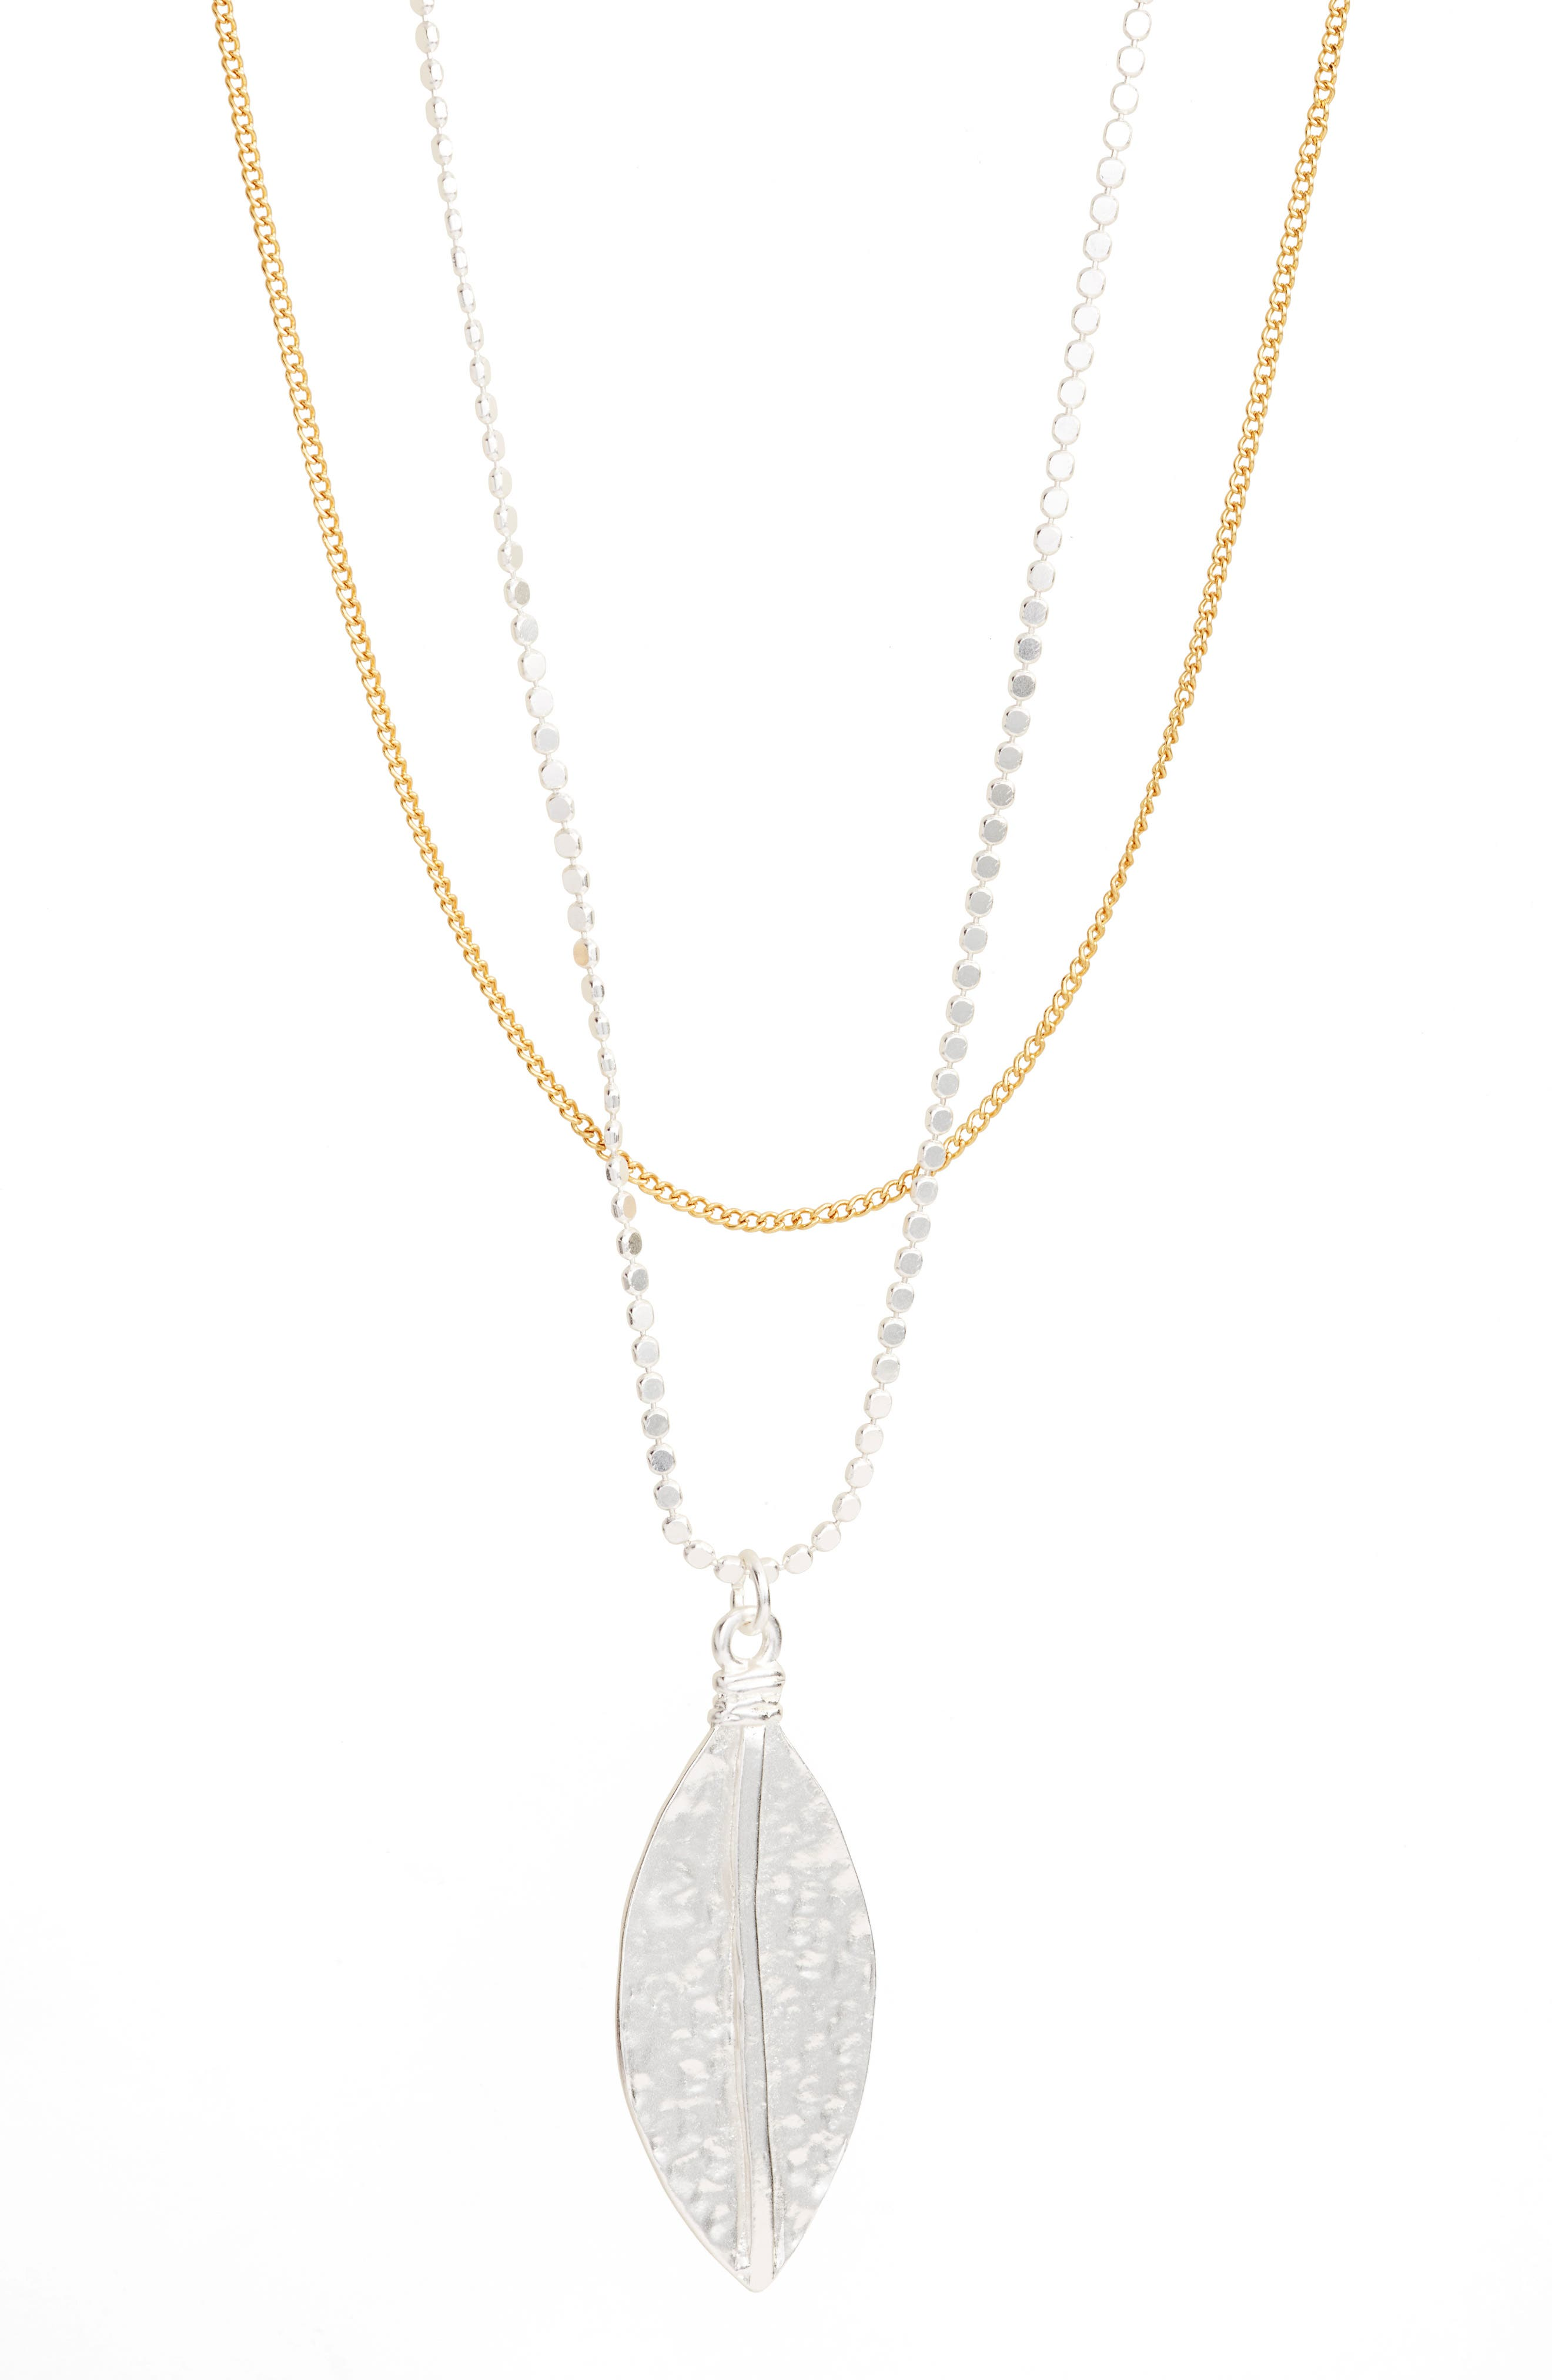 Long Multistrand Necklace,                             Alternate thumbnail 2, color,                             SILVER/GOLD MIX